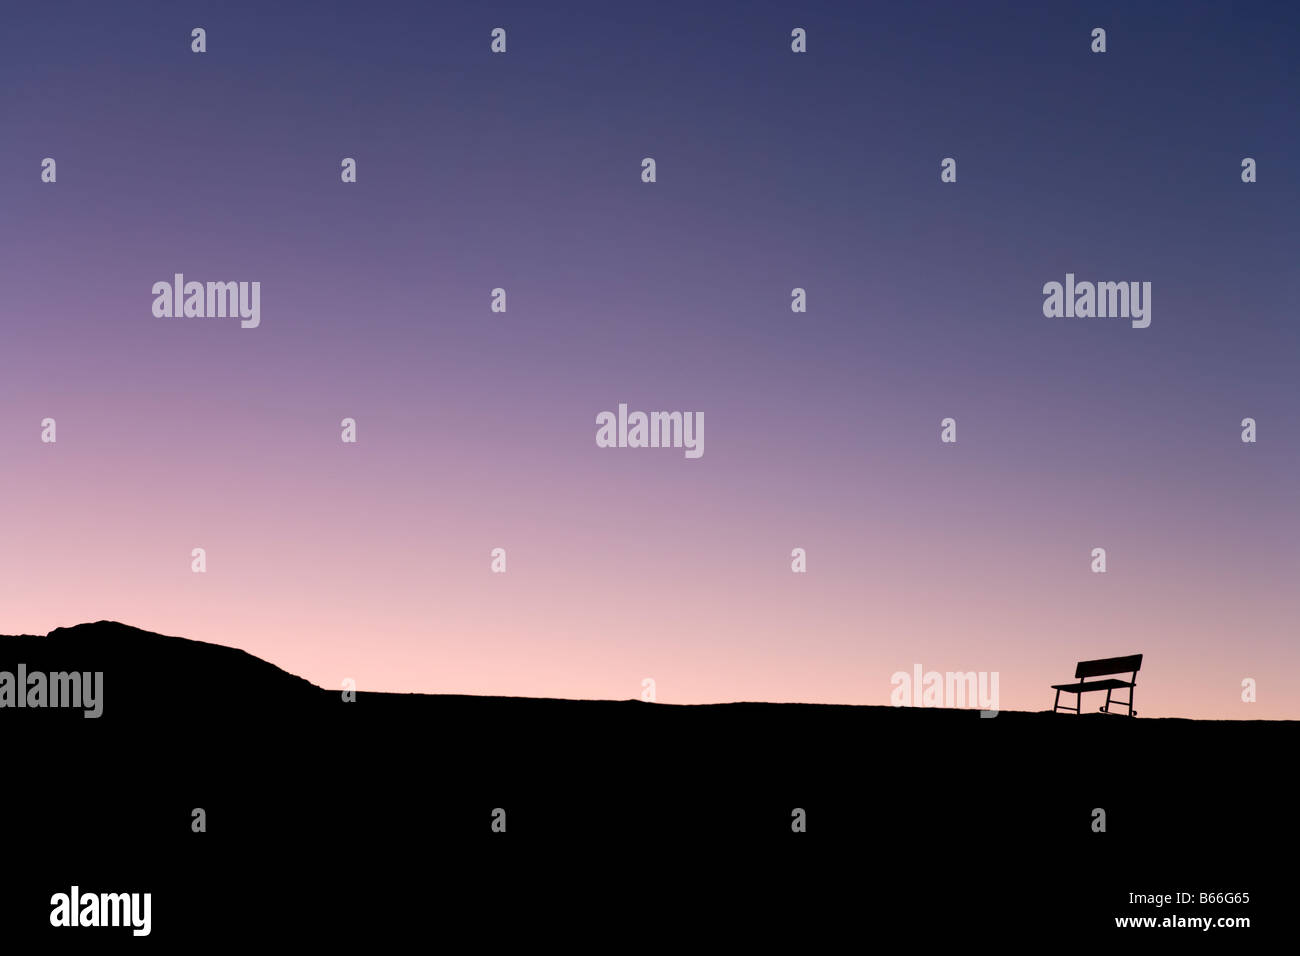 Silhouette of lone bench on the skyline at sunset, Zabriskie Point, Death Valley National Park, California, USA - Stock Image